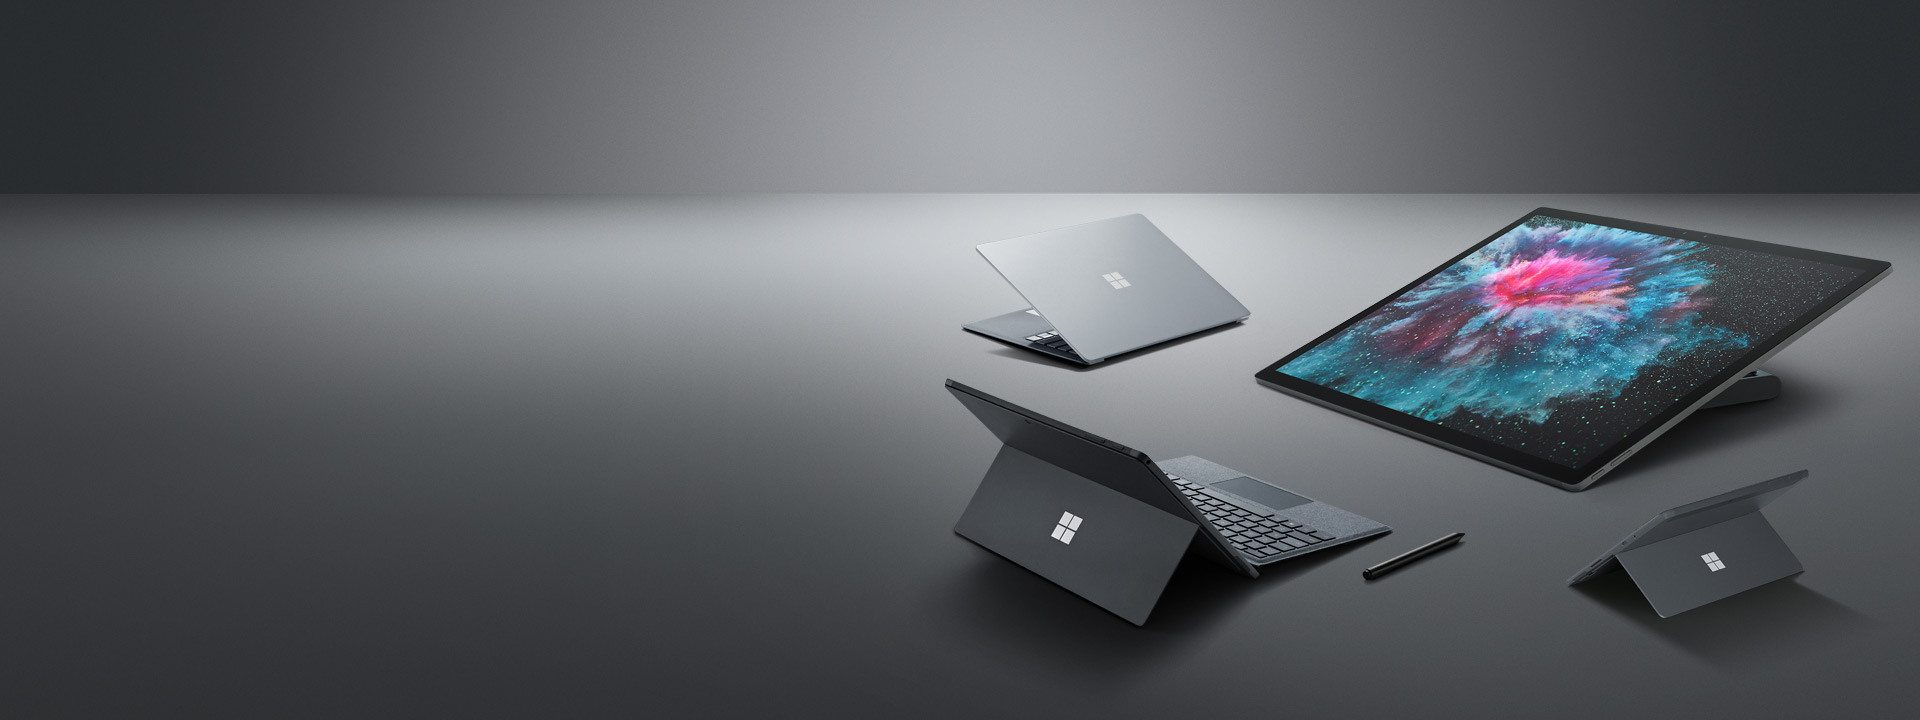 Surface Laptop 2, Surface Pro 6, Surface Go, Surface Studio 2